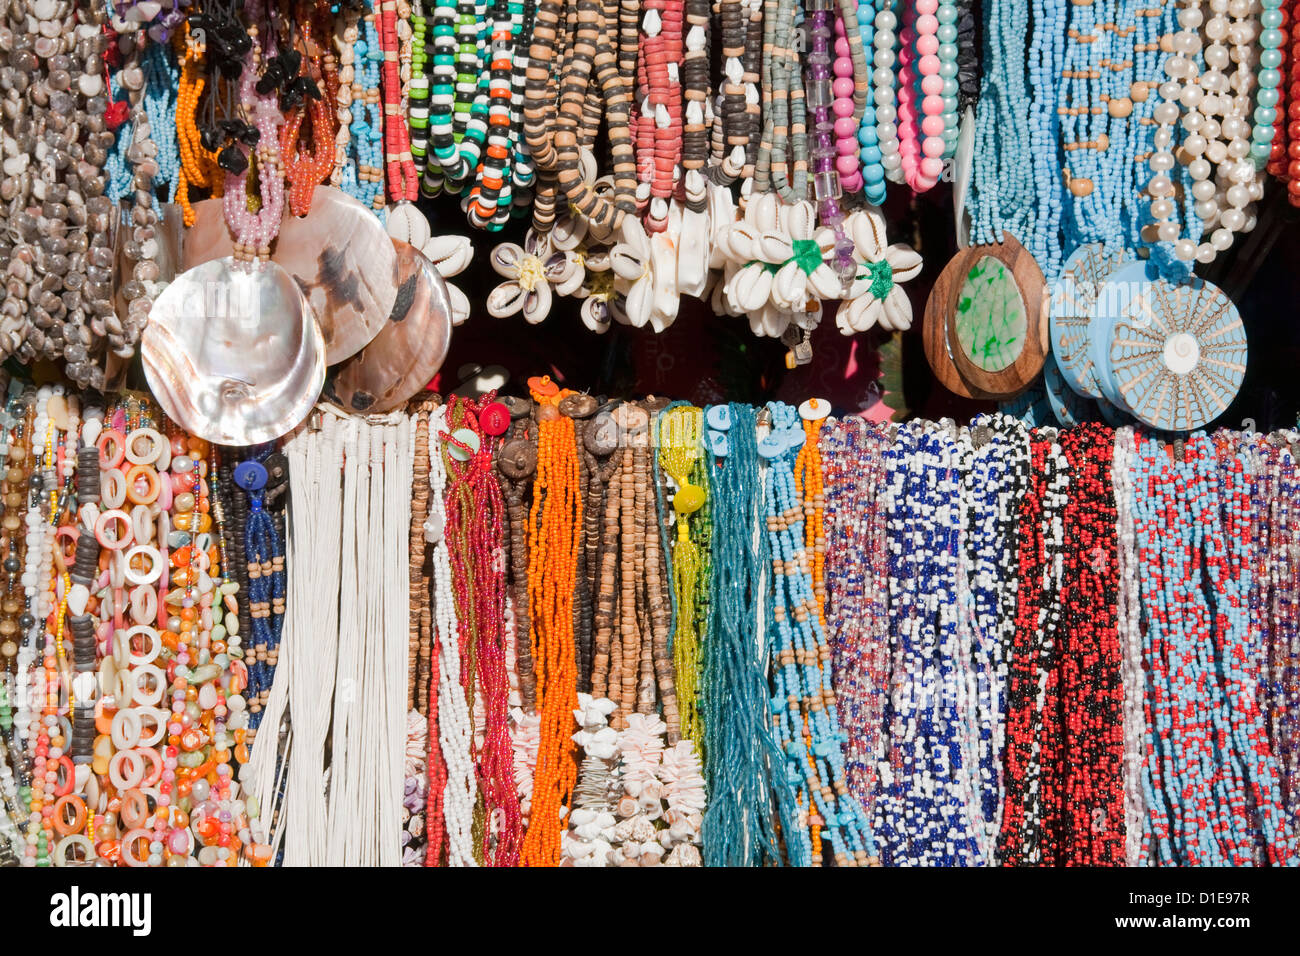 Craft store in Puerta Maya, Cozumel Island, Quintana Roo, Mexico, North America - Stock Image